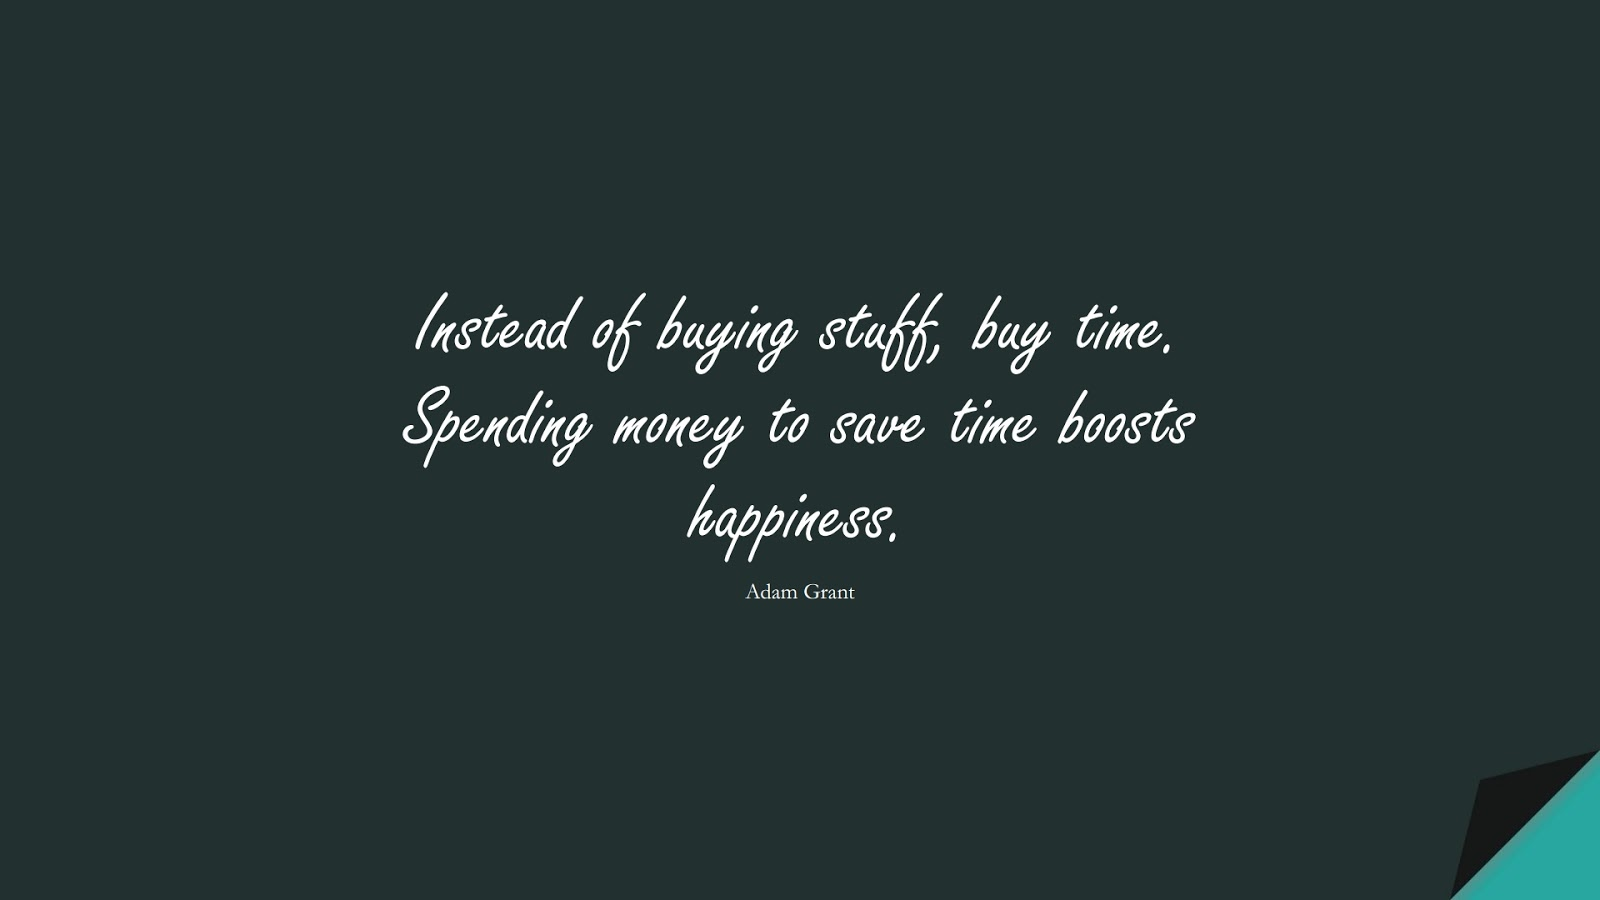 Instead of buying stuff, buy time. Spending money to save time boosts happiness. (Adam Grant);  #MoneyQuotes